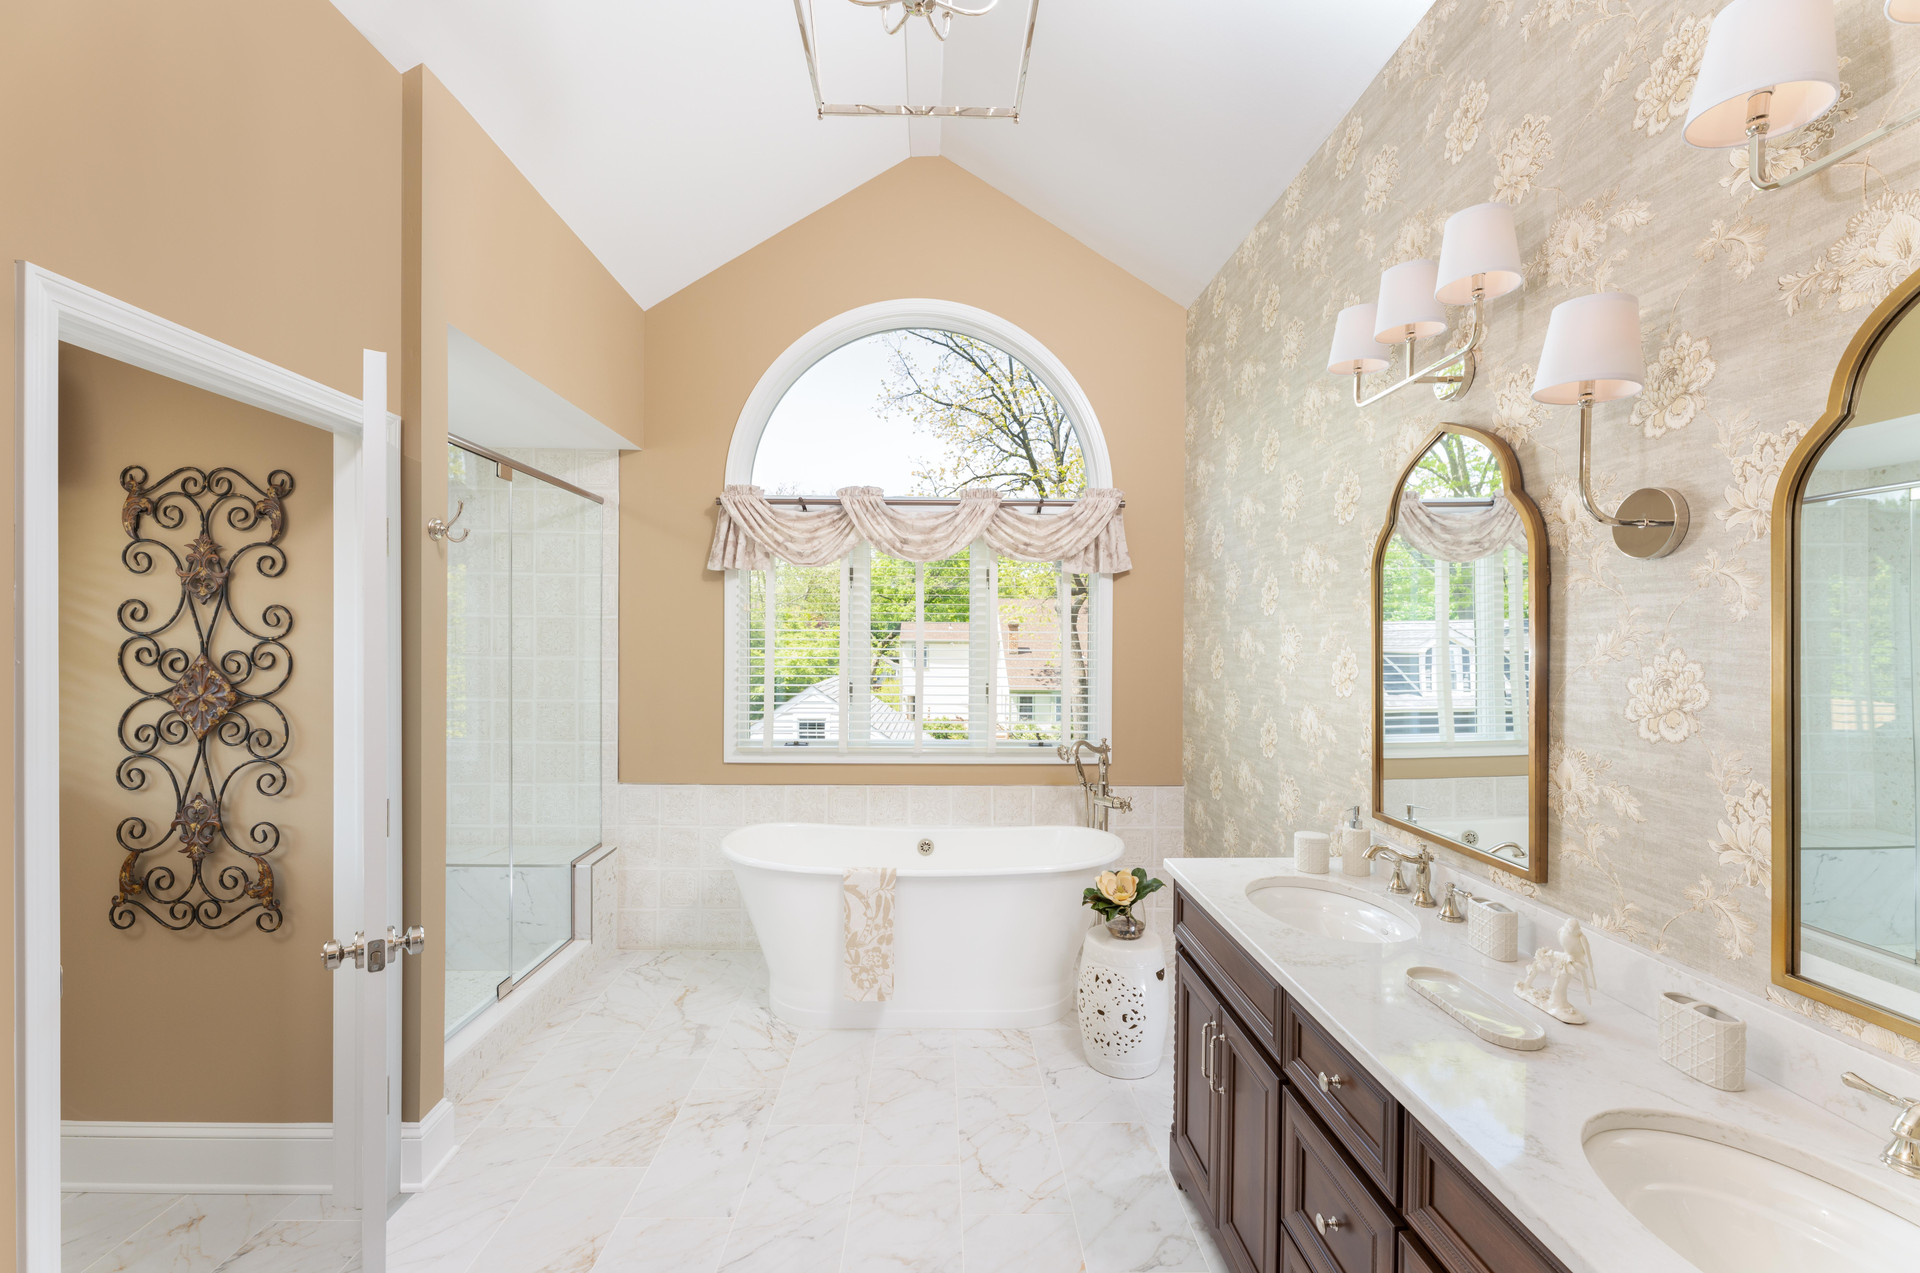 Moorestown, NJ: Southern Charm Bathrooms